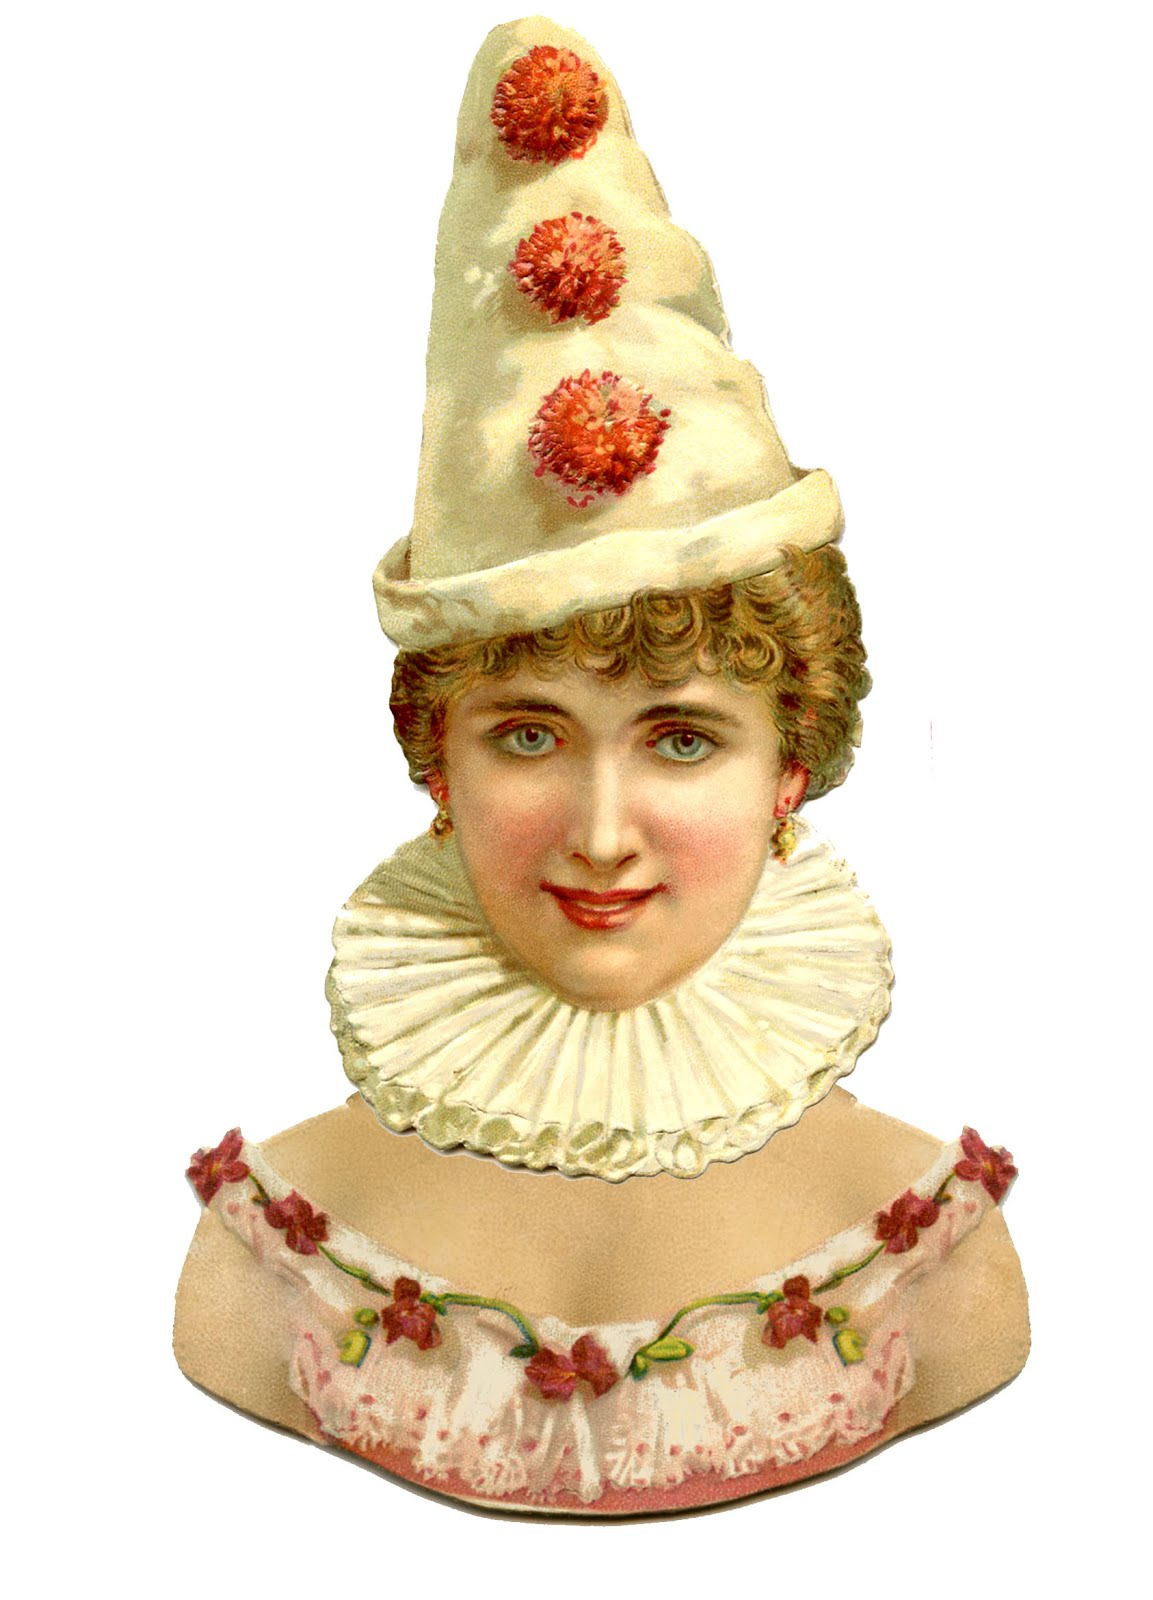 http://thegraphicsfairy.com/wp-content/uploads/blogger/-eA0vRINPiDk/T1a4Ey2VARI/AAAAAAAAQzE/8GR1Vq_R-x0/s1600/Paperdoll-head-Vintage-Image-GraphicsFairy.jpg